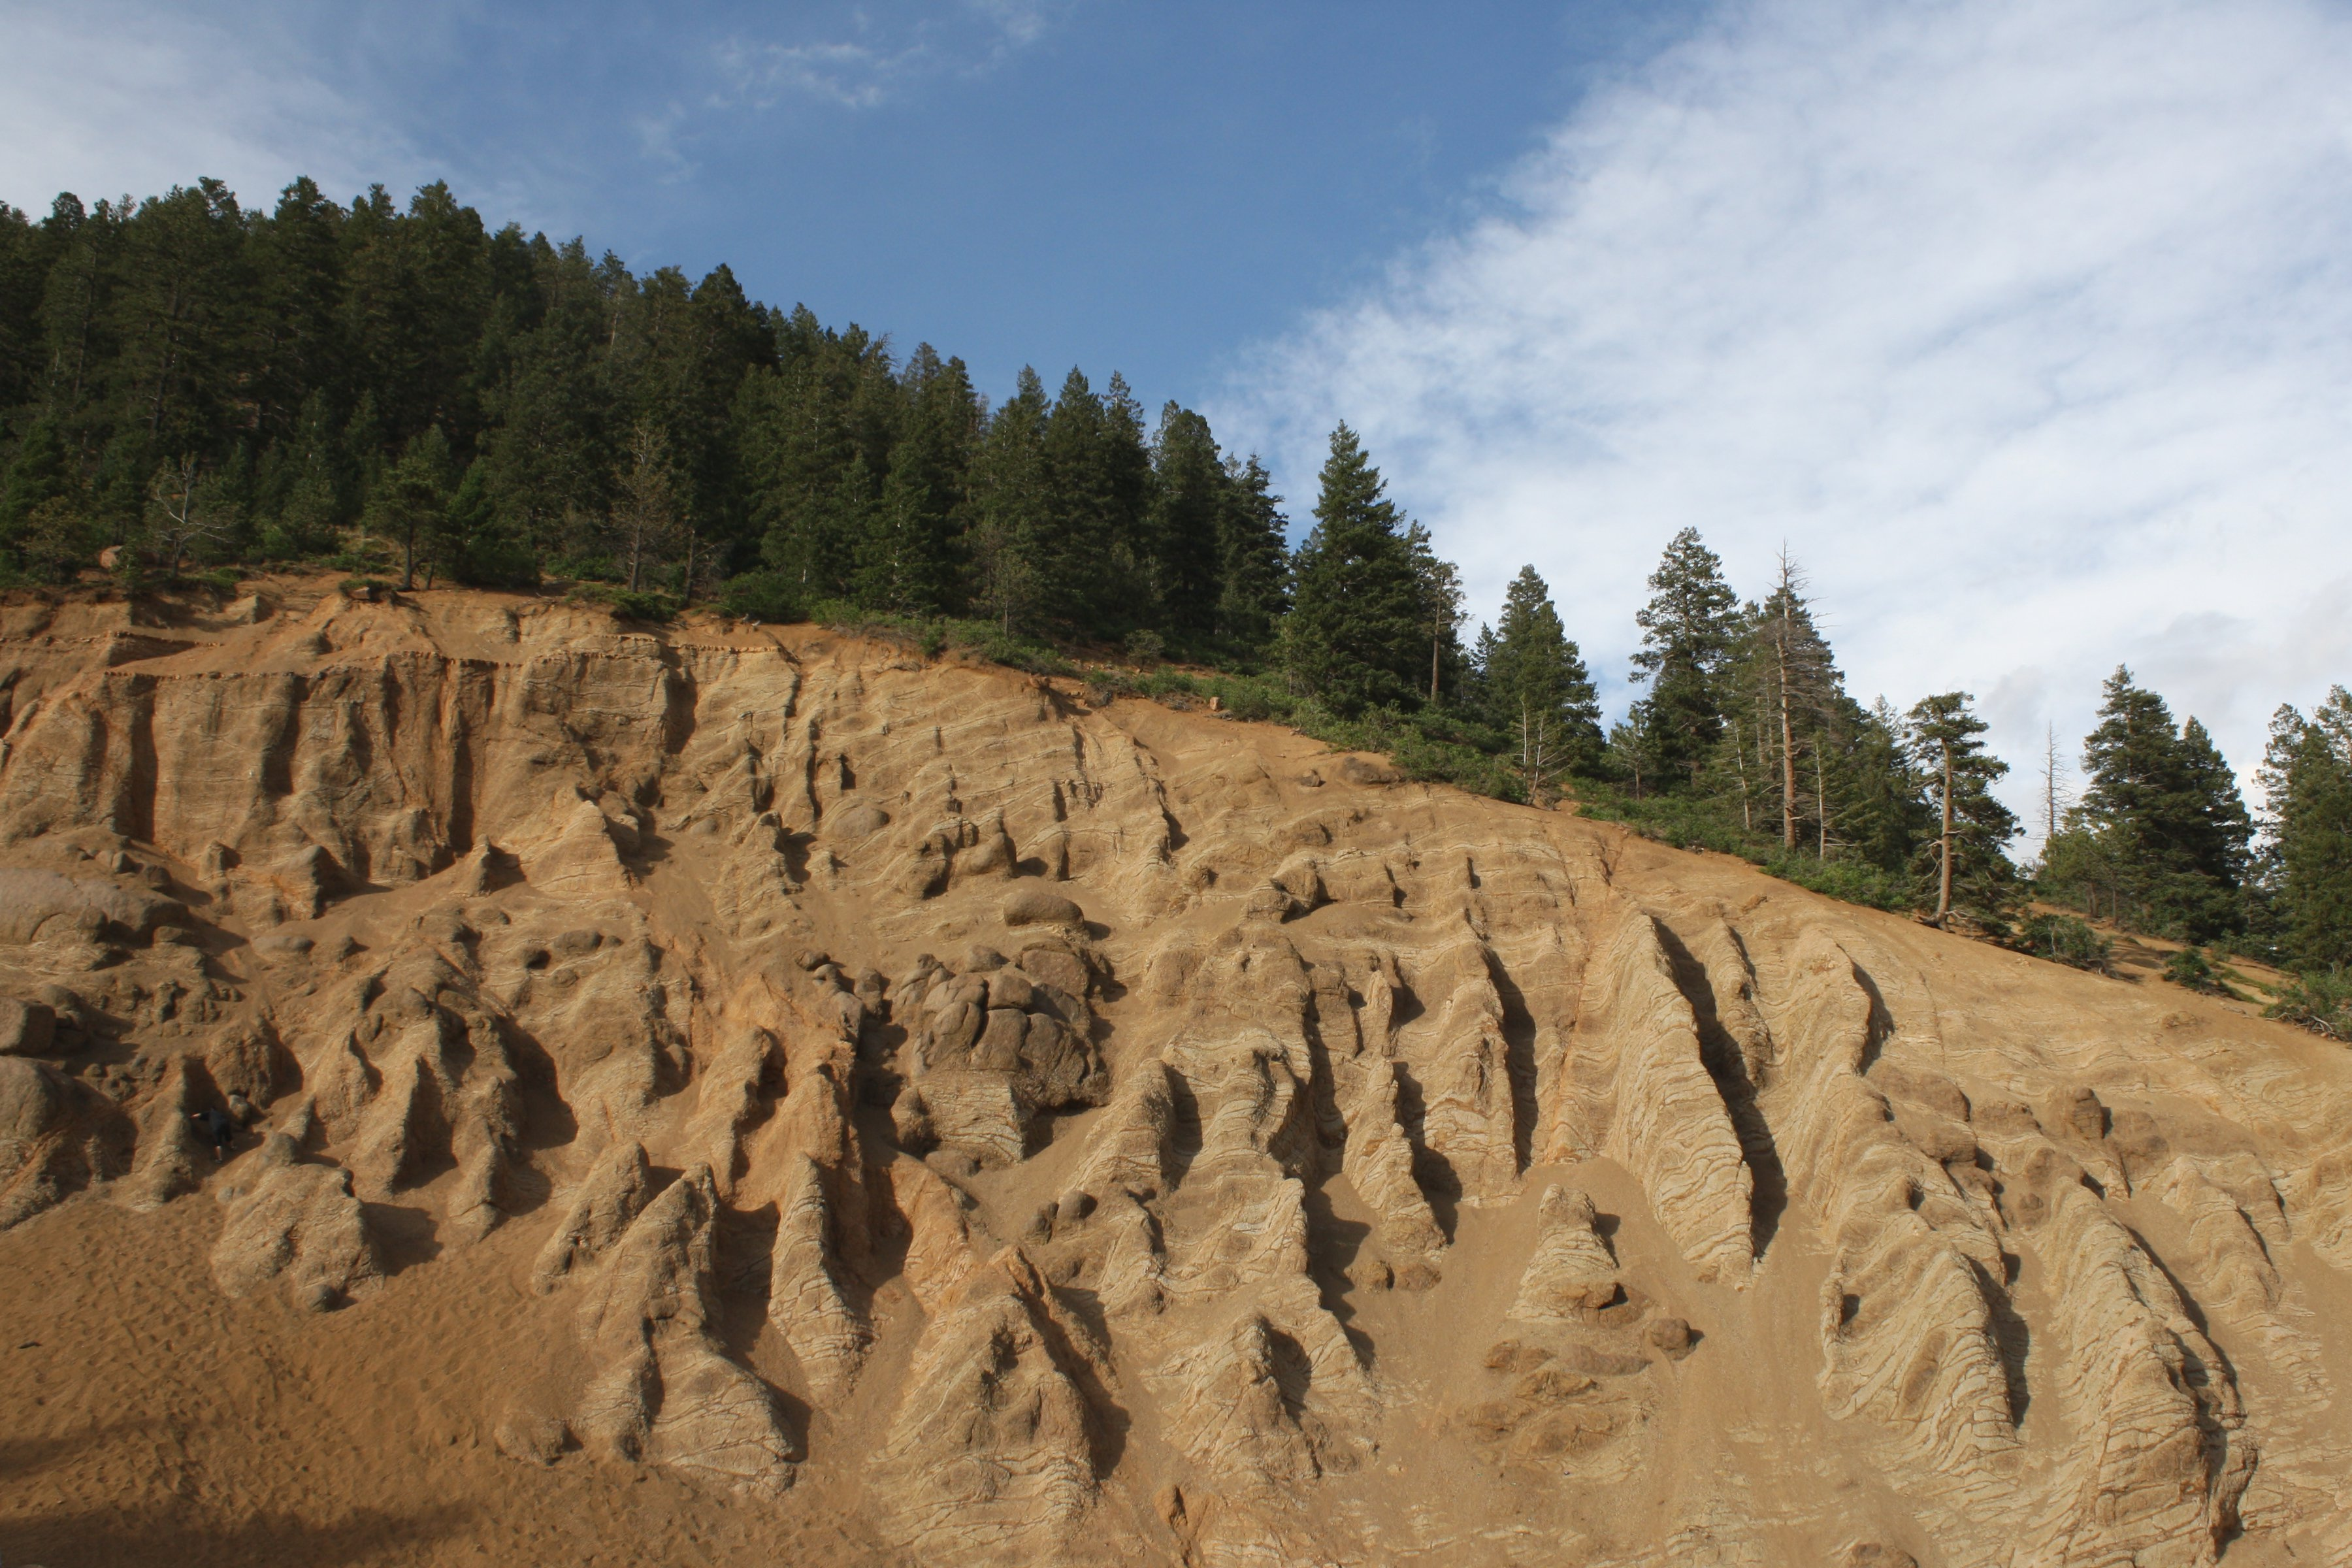 Mountain Ridge with Erosion in Foreground Picture | Free ...